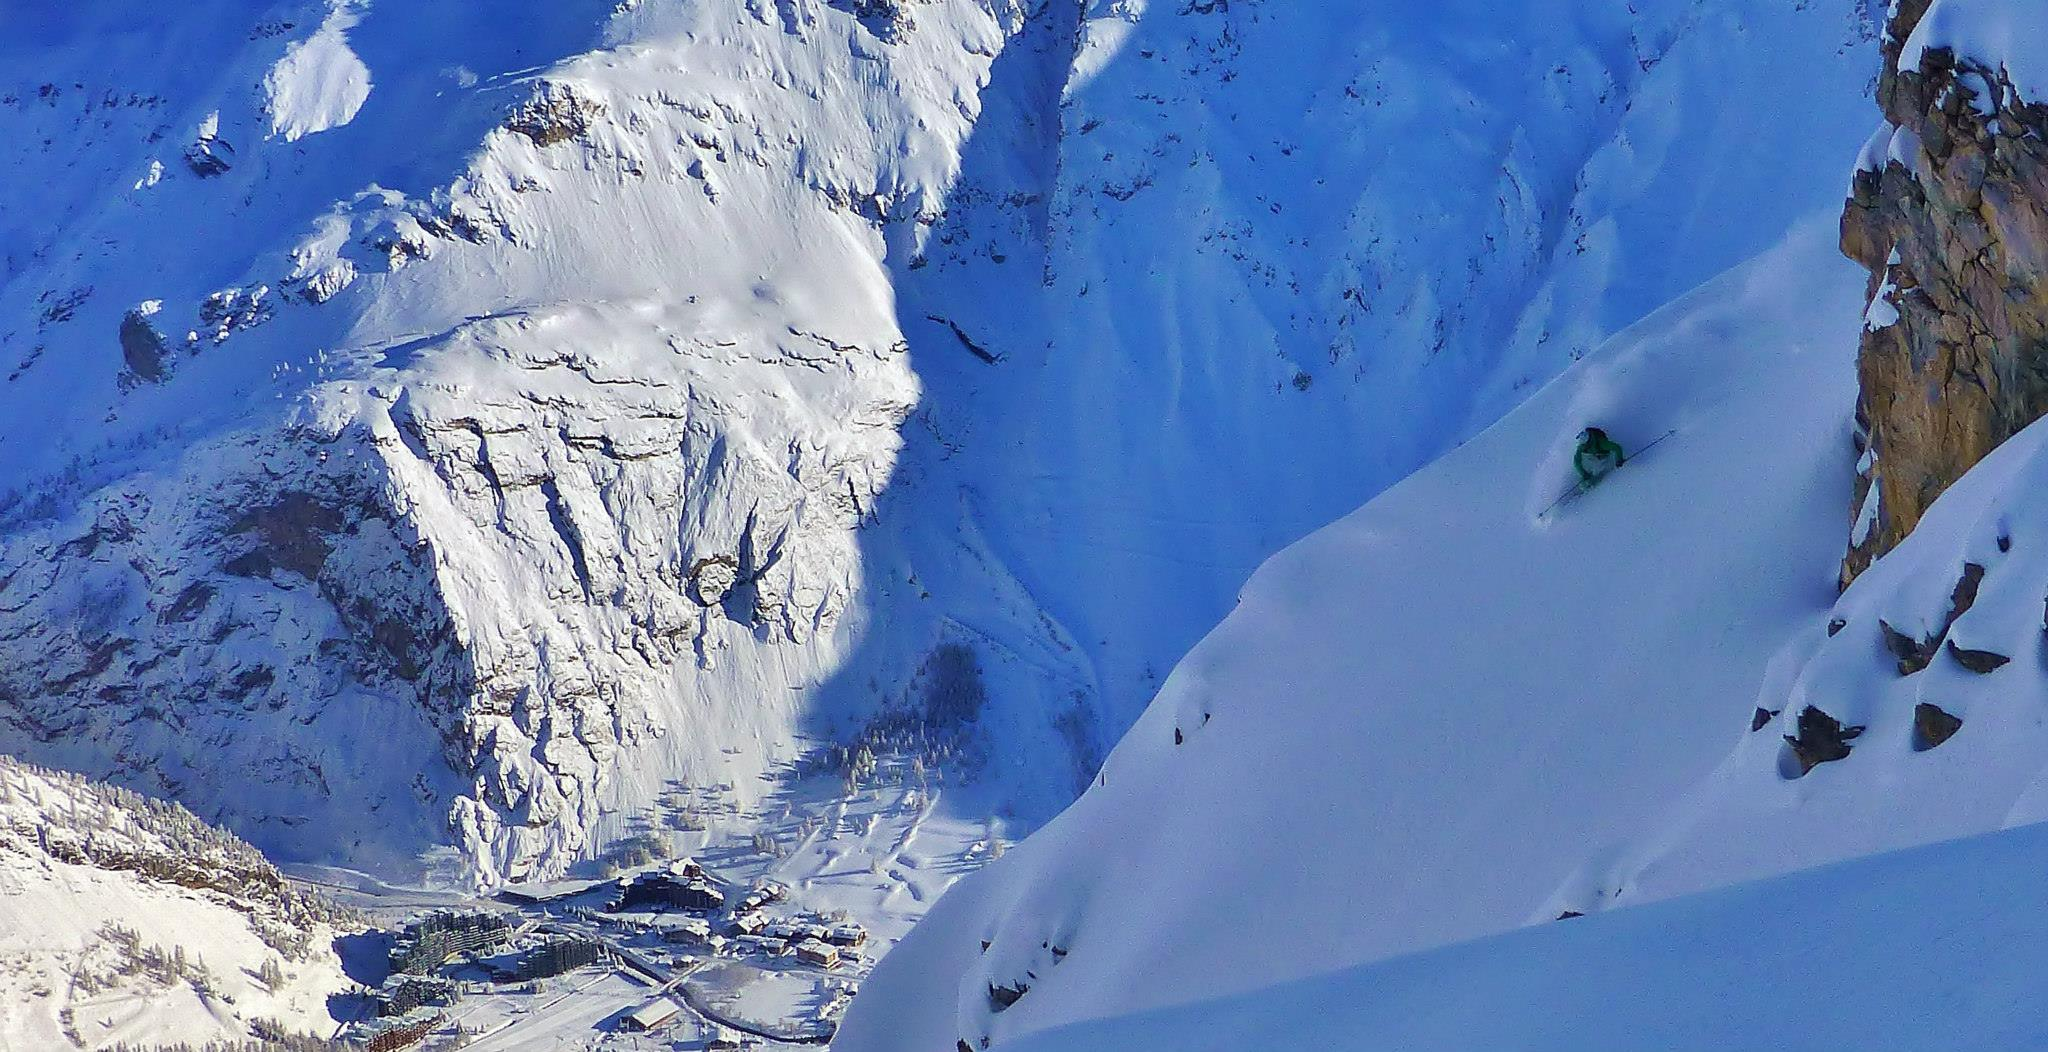 Skier making big powder turn in entrance to Table couloir Val d'Isere